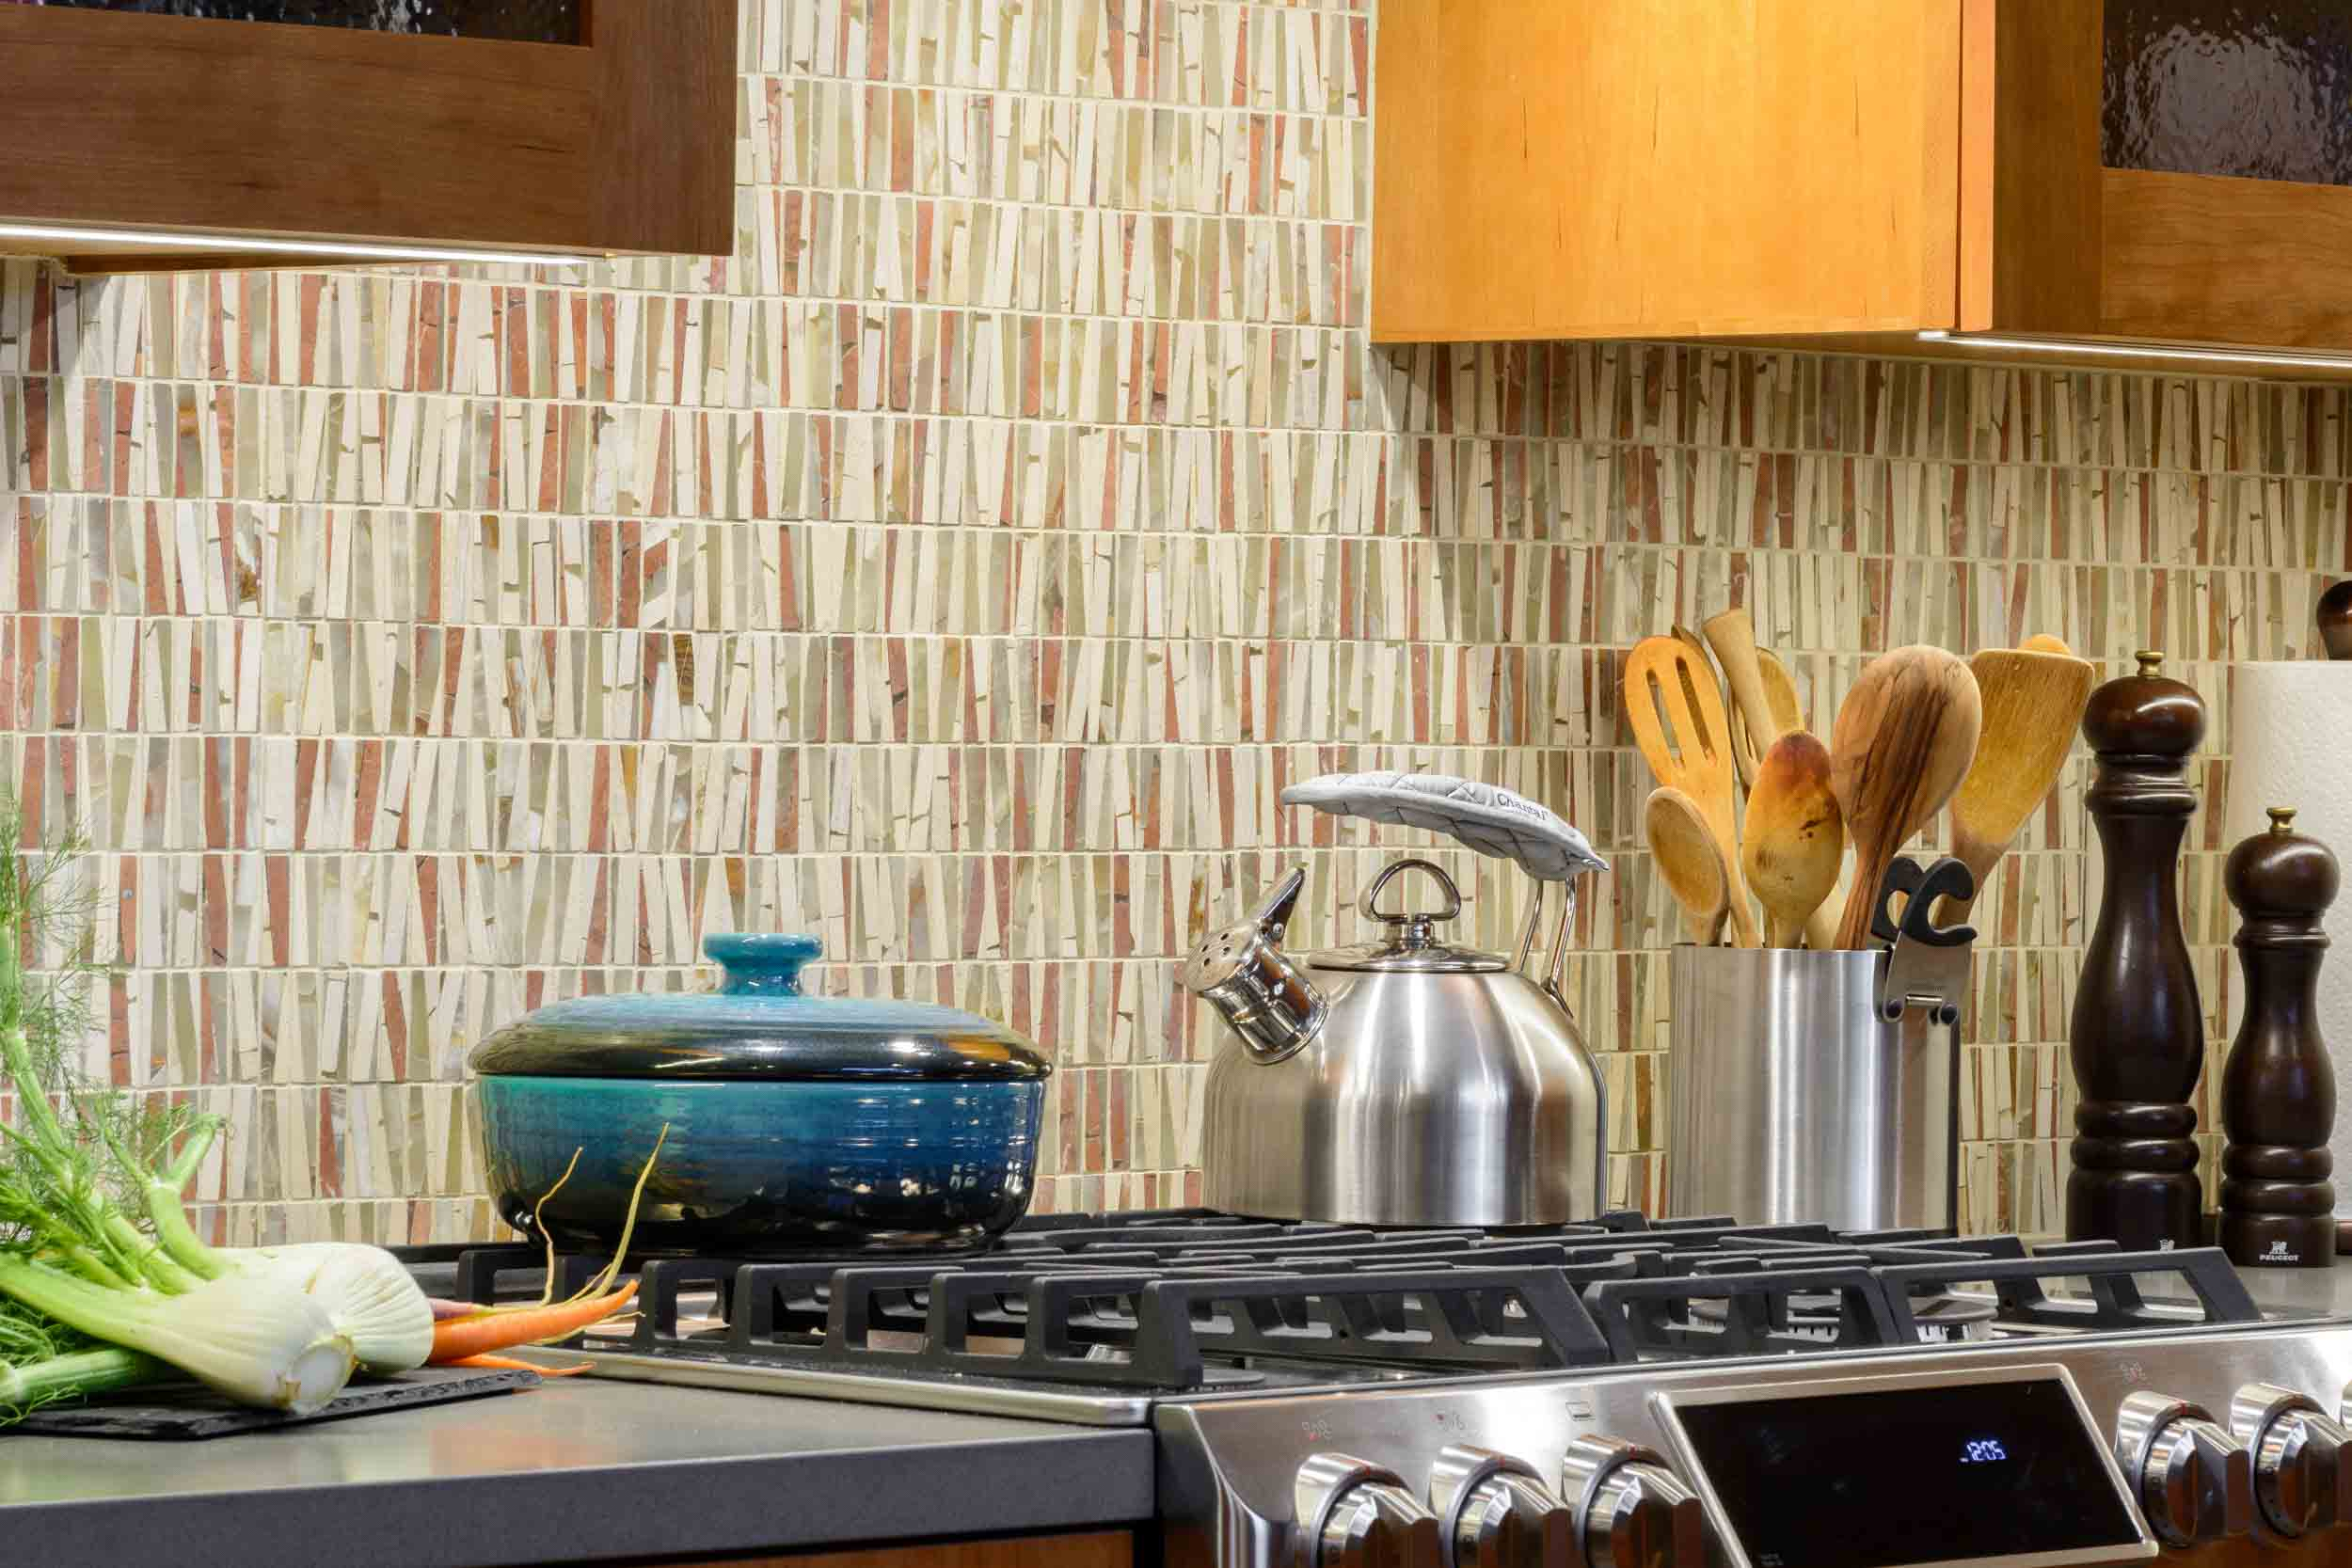 Beautiful Tile back-splash adds warmth to this Modern Kitchen Remodel in Claremont